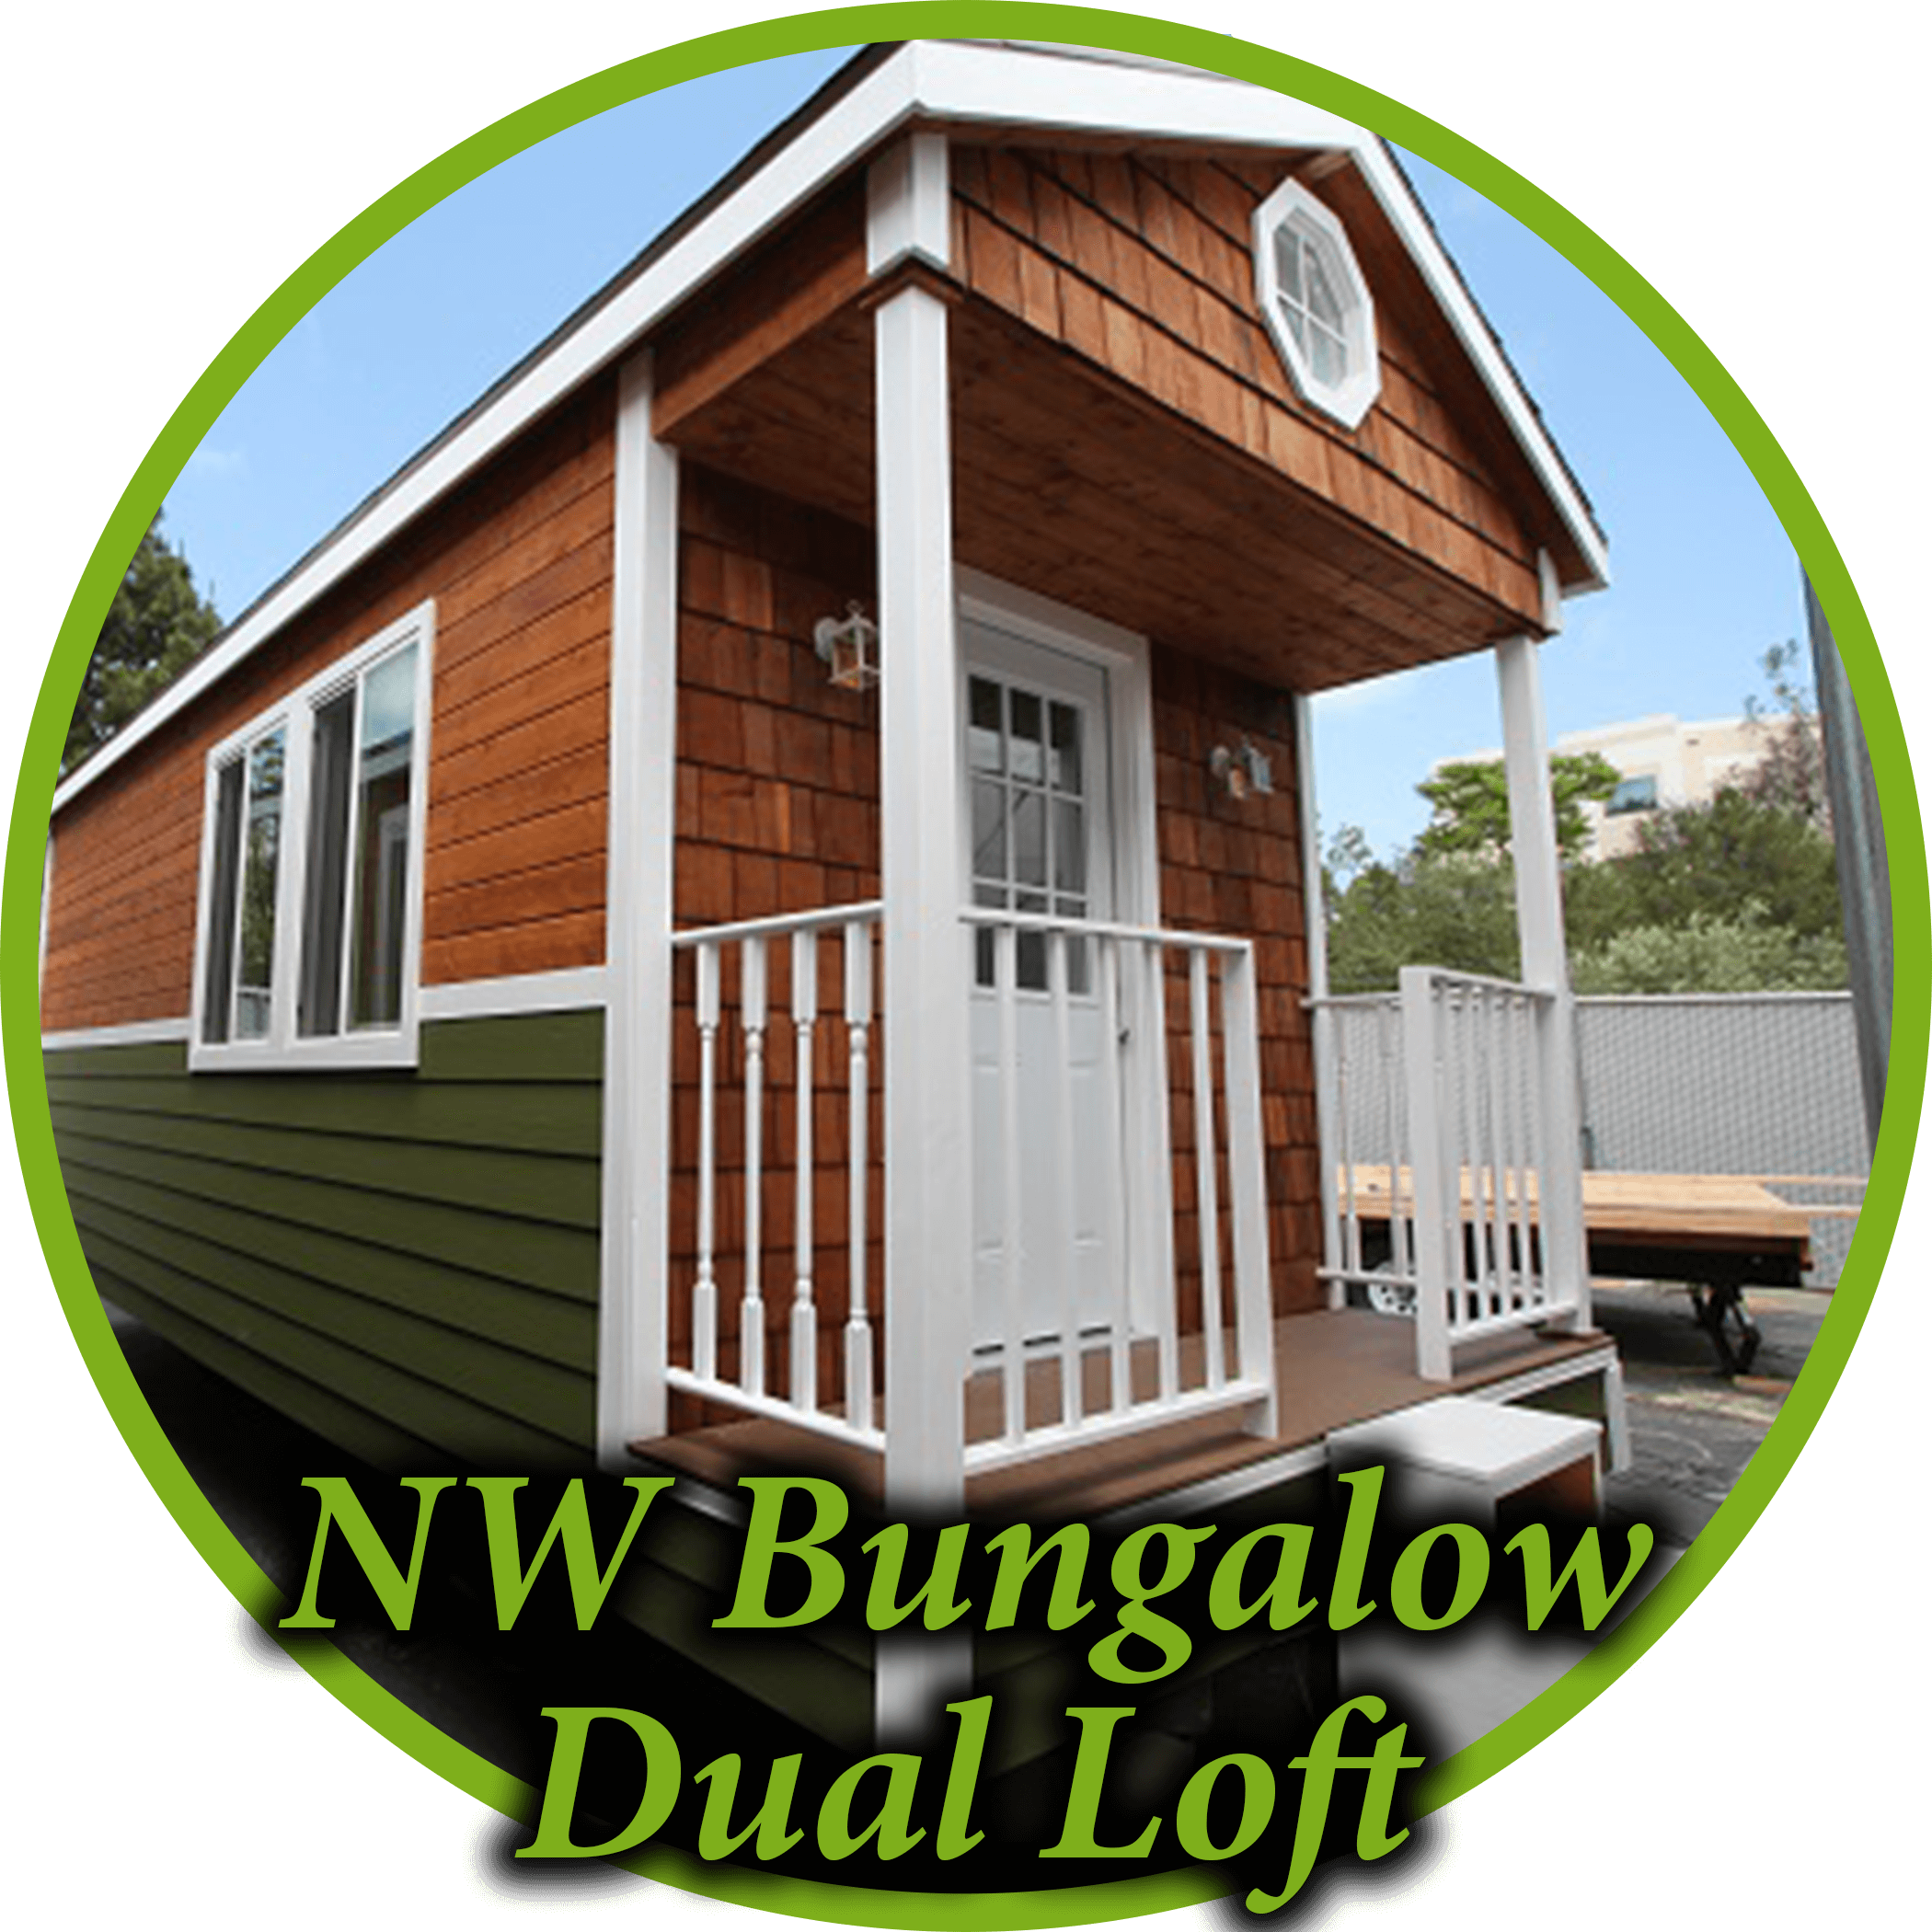 nw bungalow dual loft circle (optimized).png